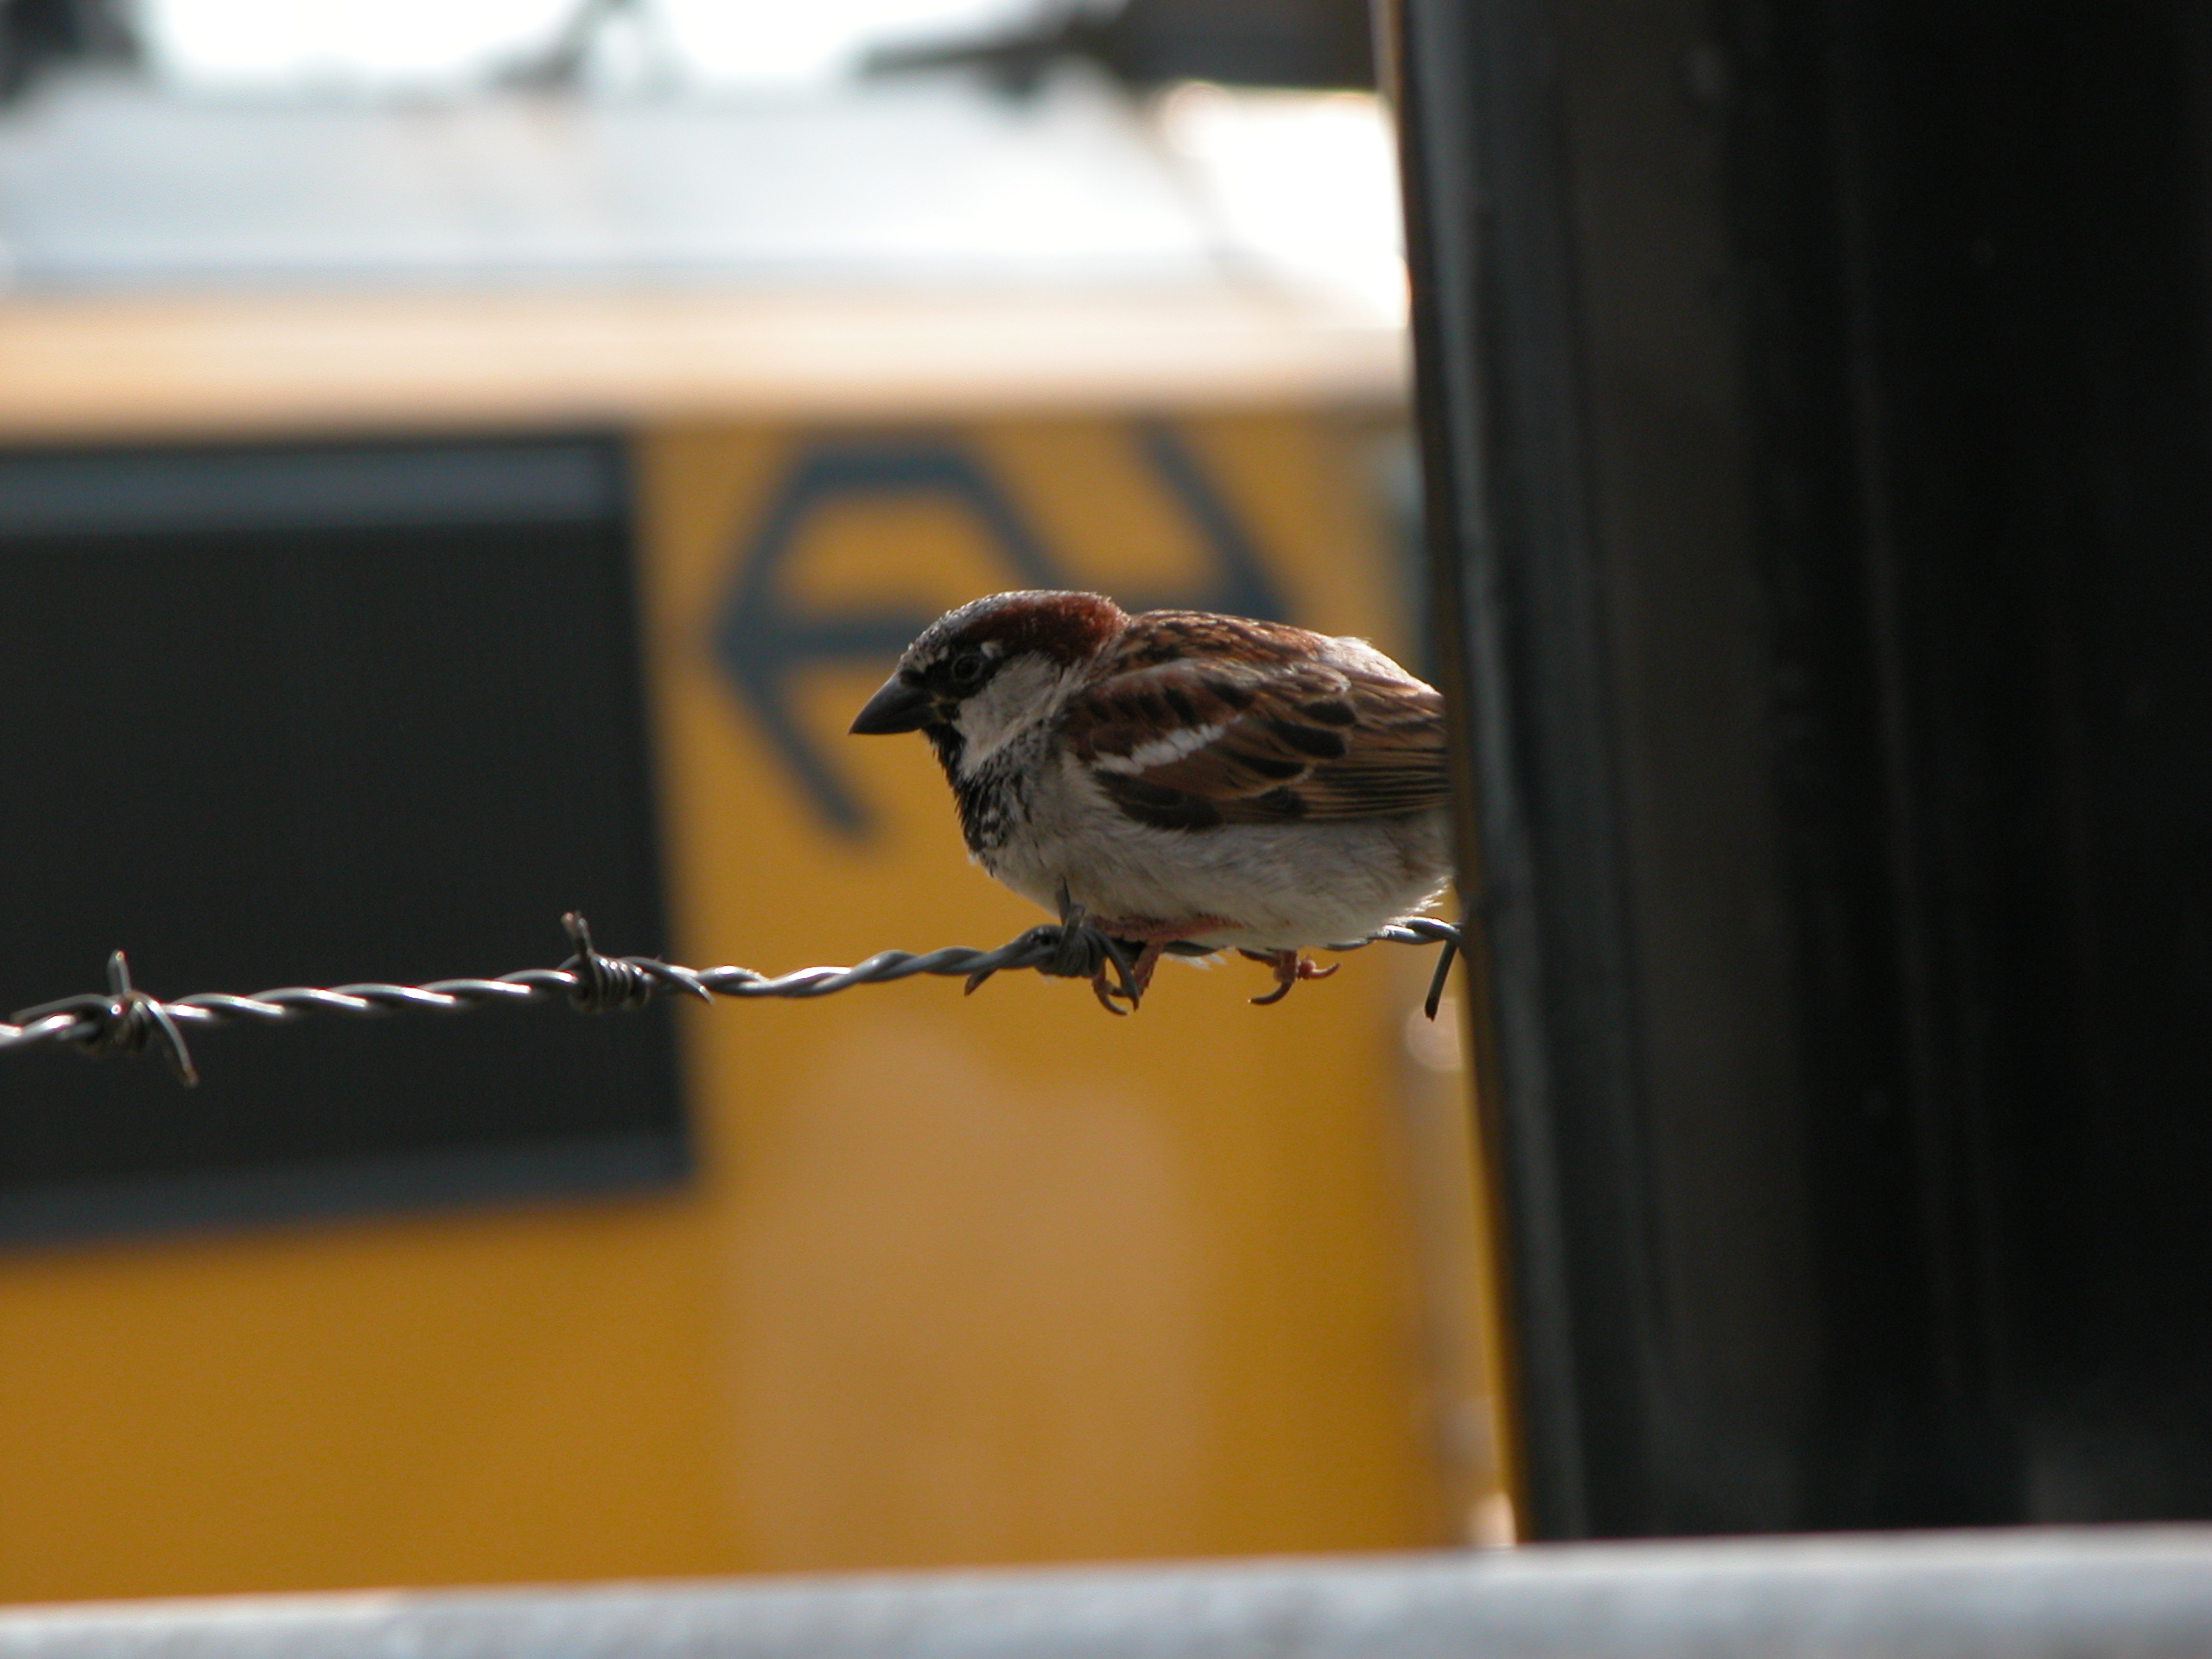 small bird sparrow feathers beak barb-wire bar wire barbed barbed-wire brown